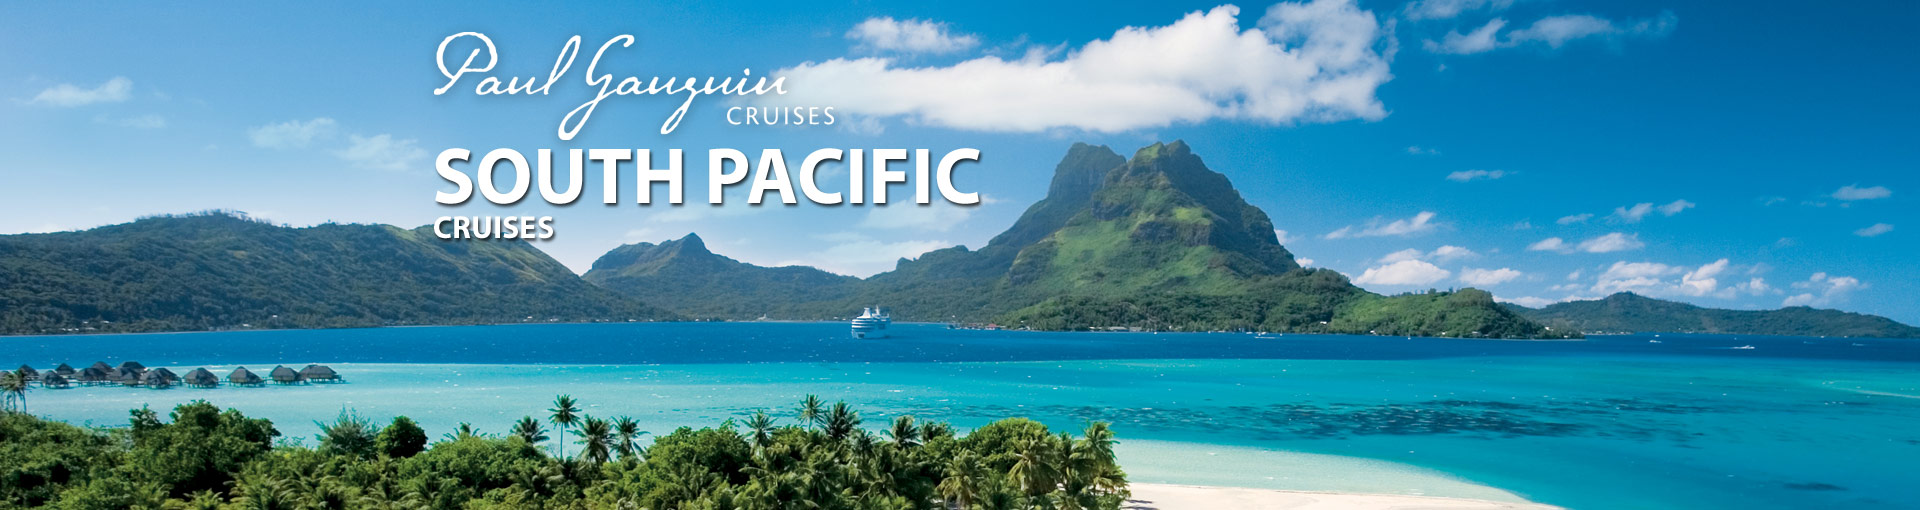 Paul Gauguin Cruises South Pacific / Tahiti Cruise